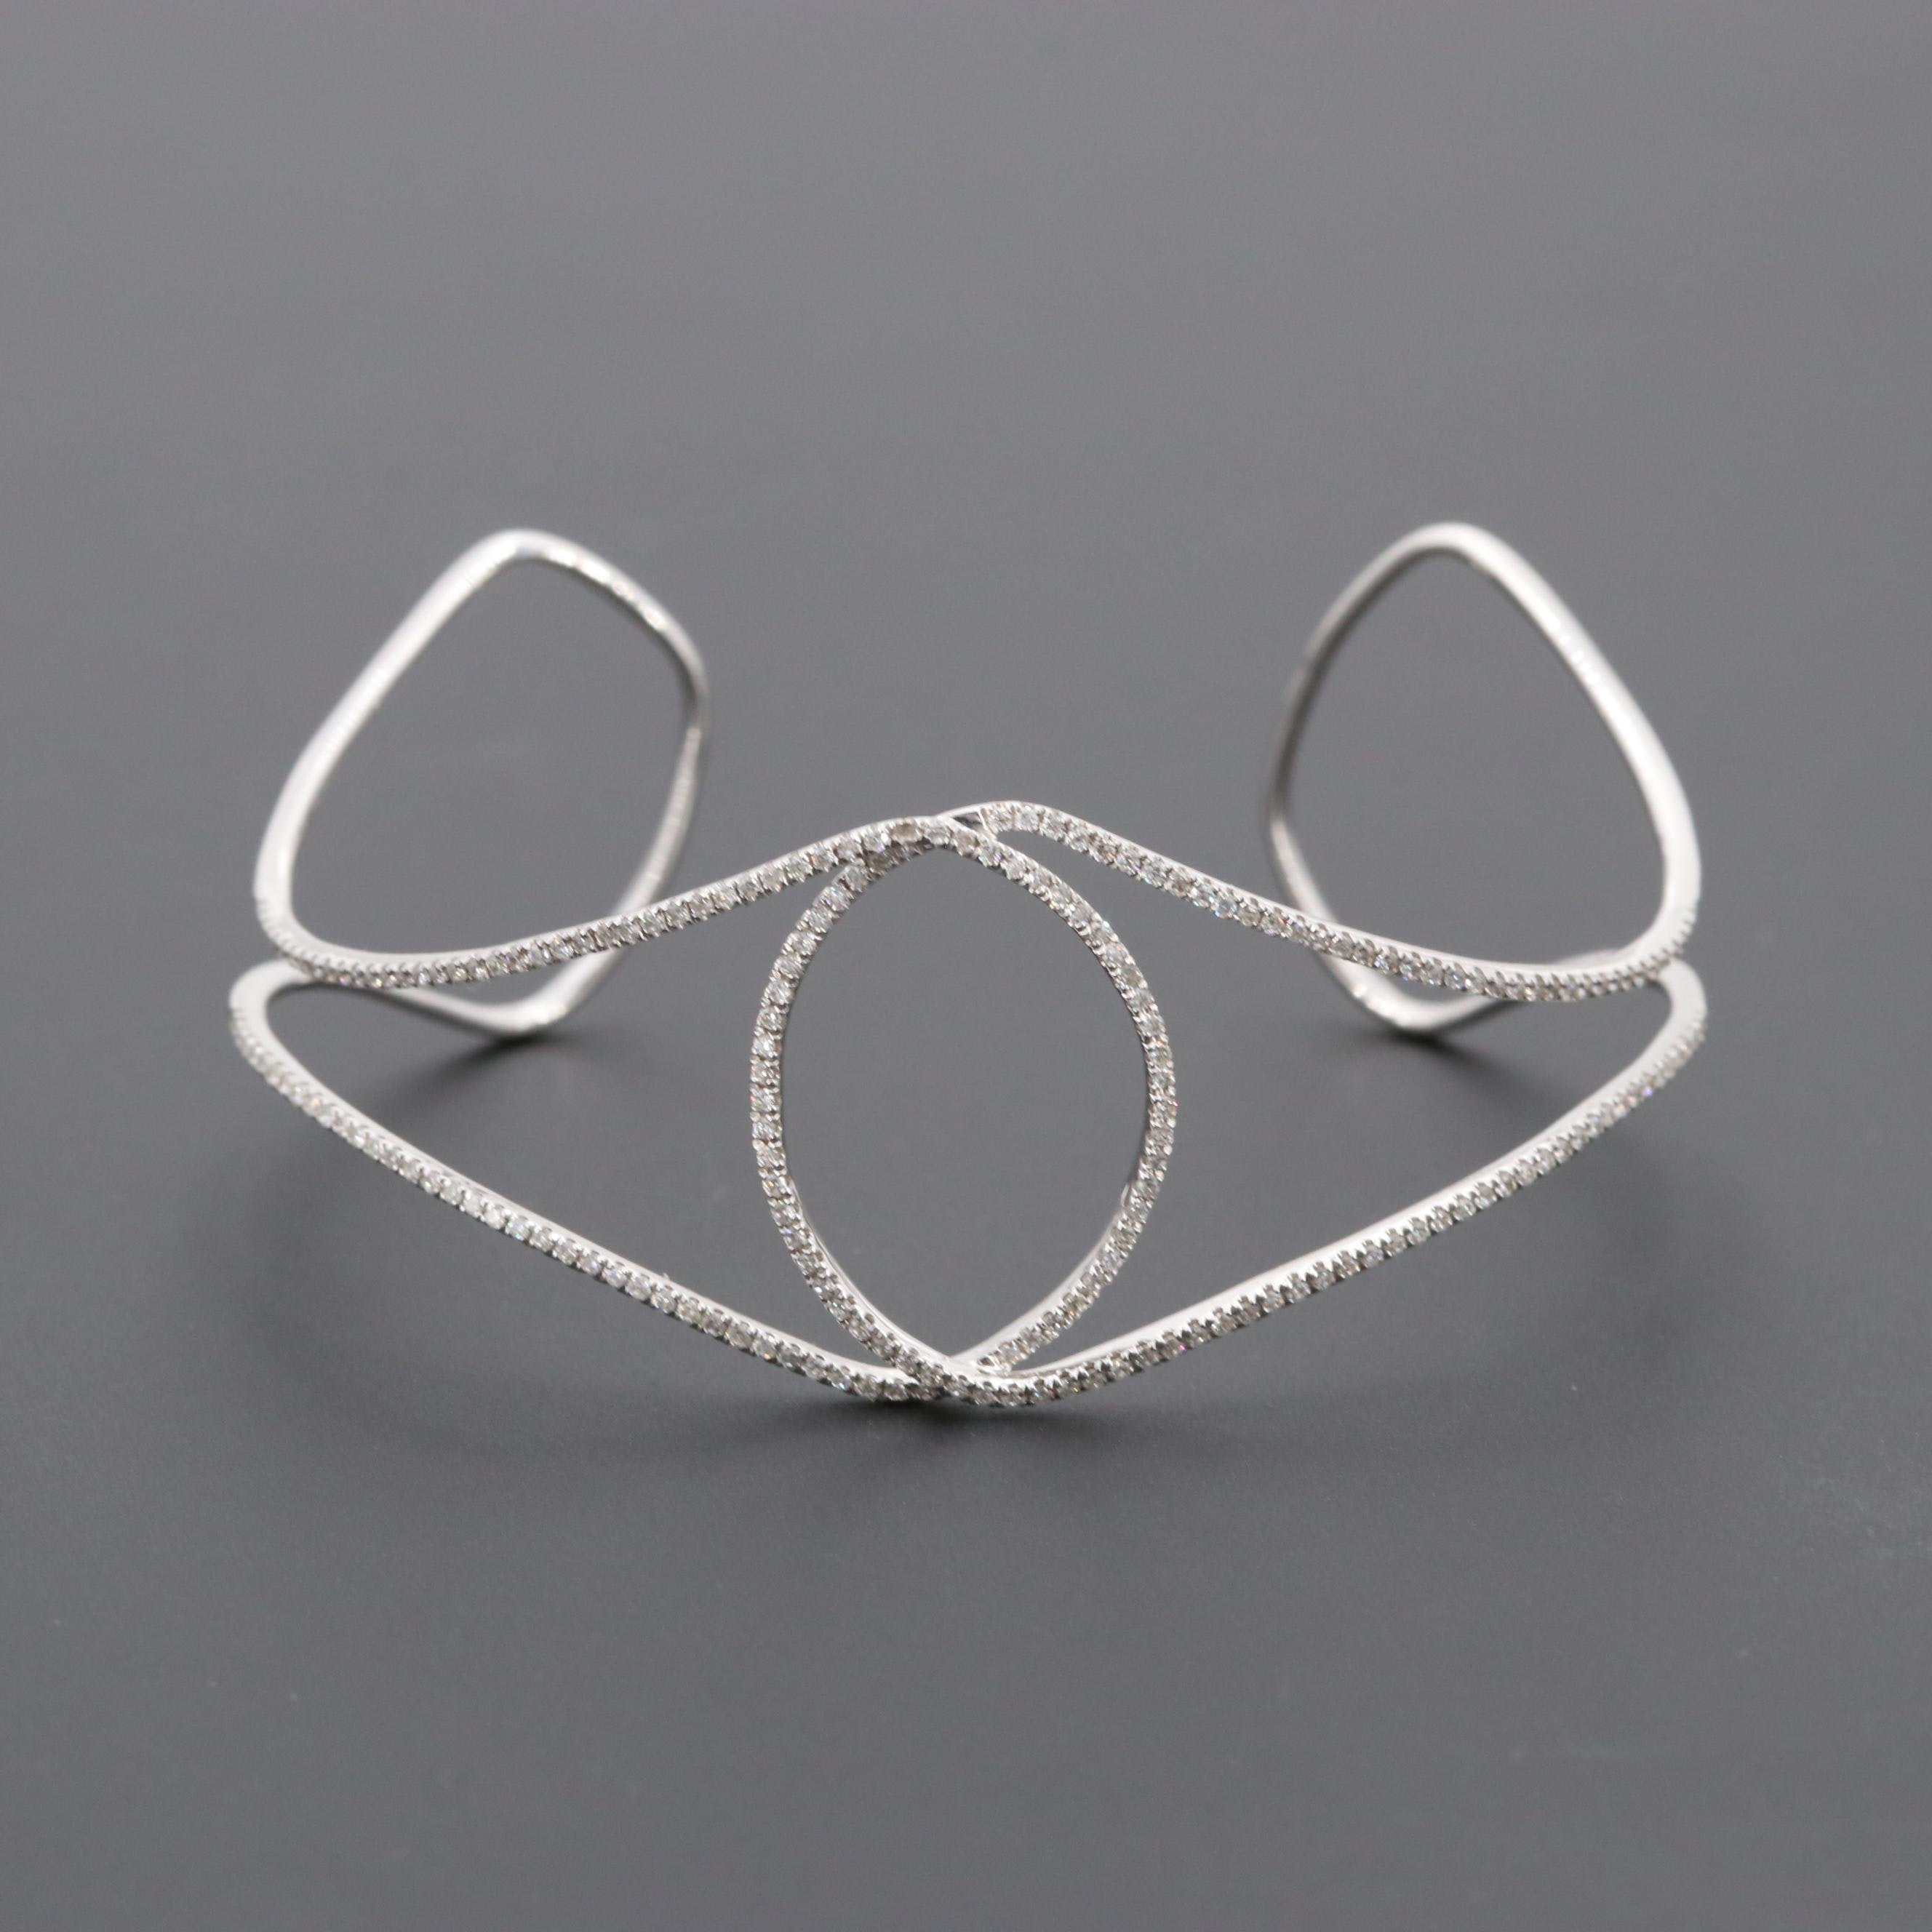 14K White Gold Diamond Cuff Bracelet